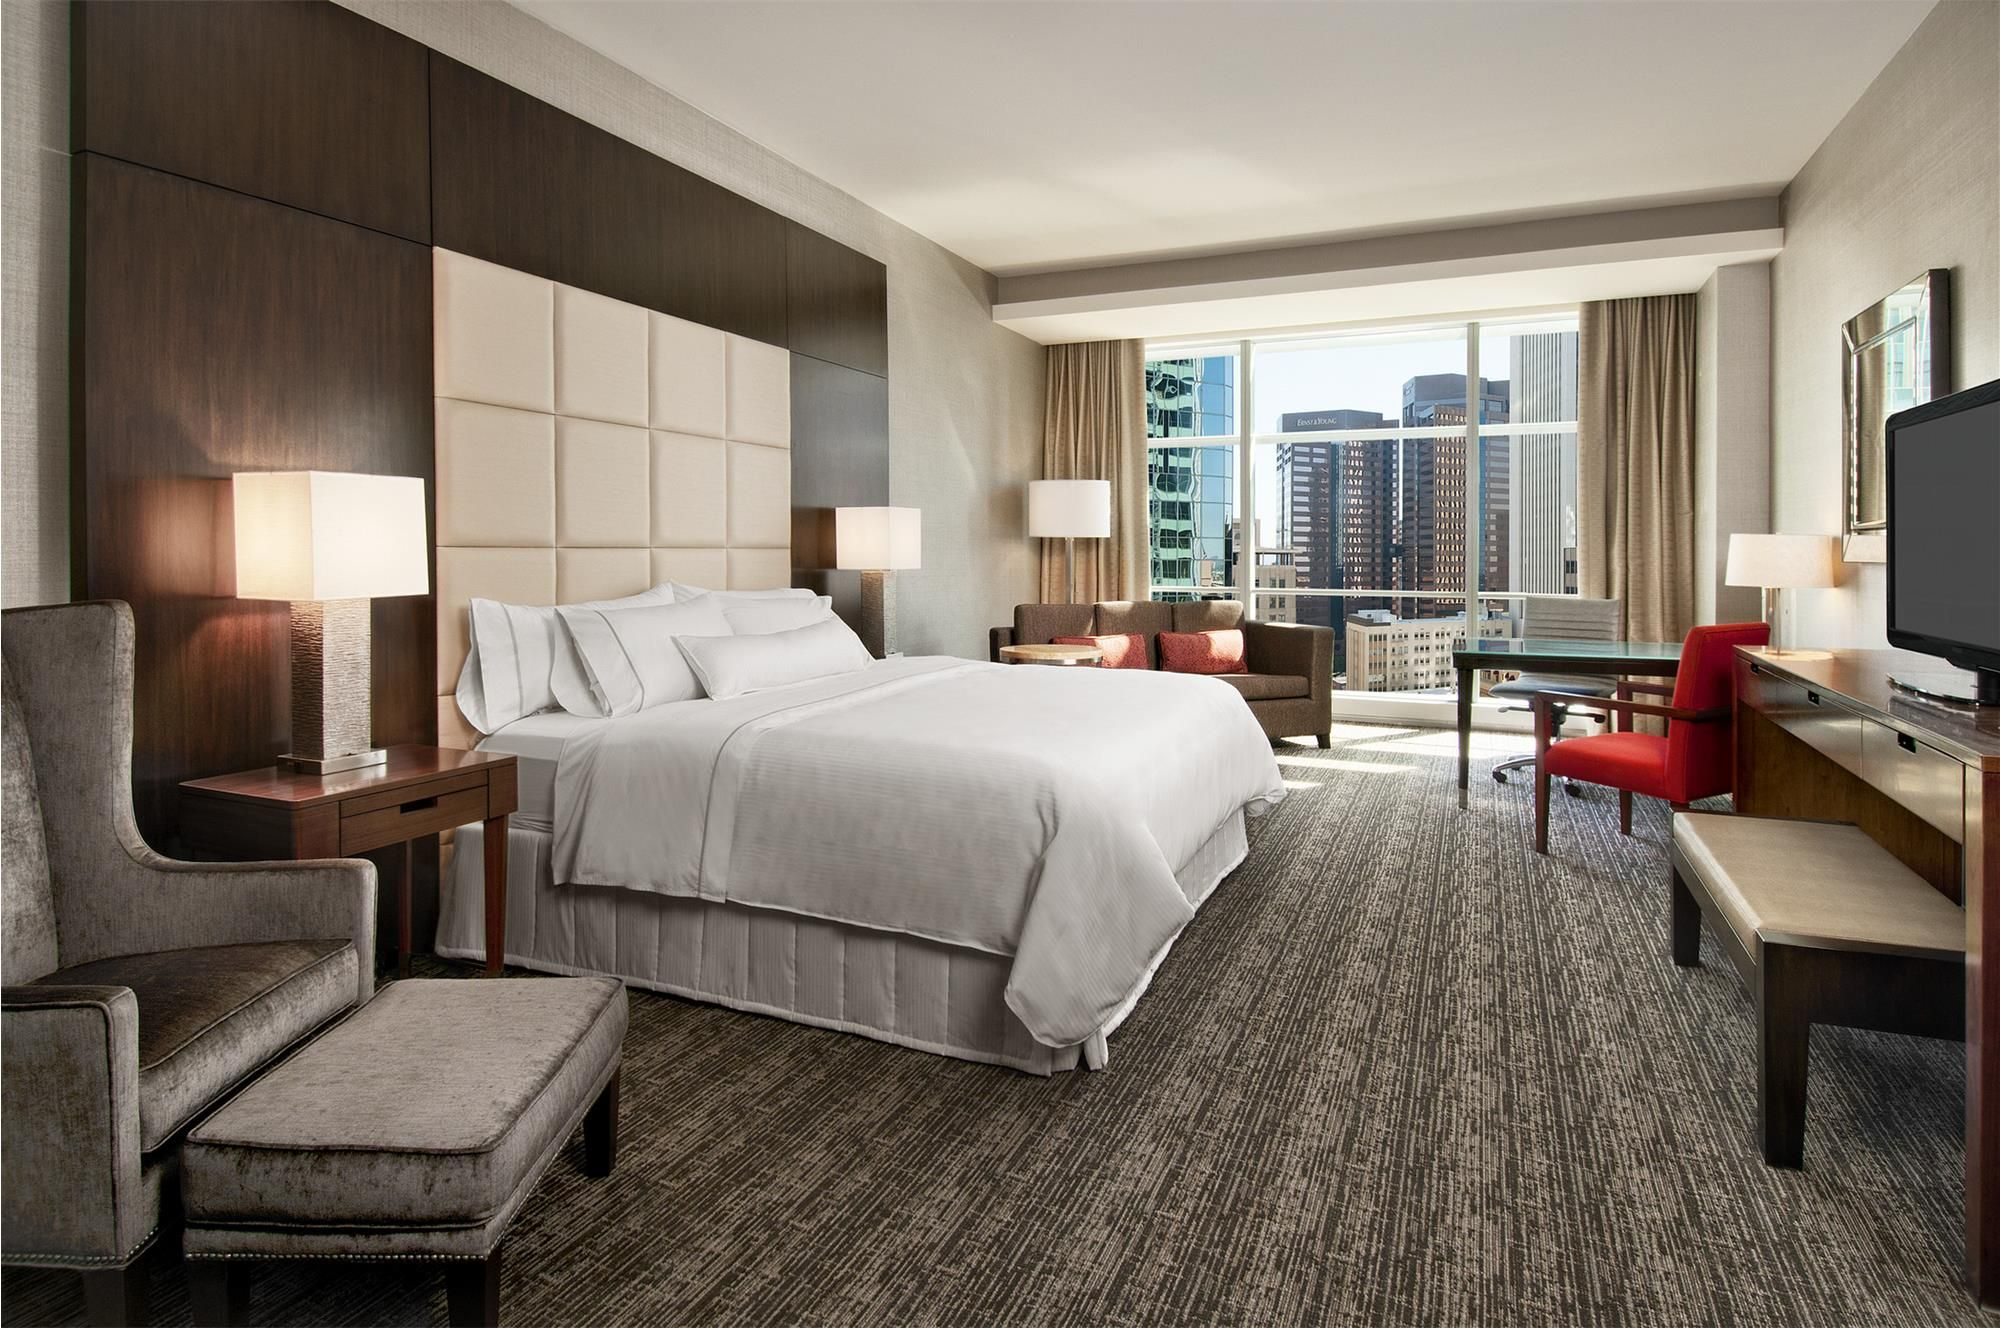 Hotels In Phoenix Hosted Celebrities Politicians Downtown